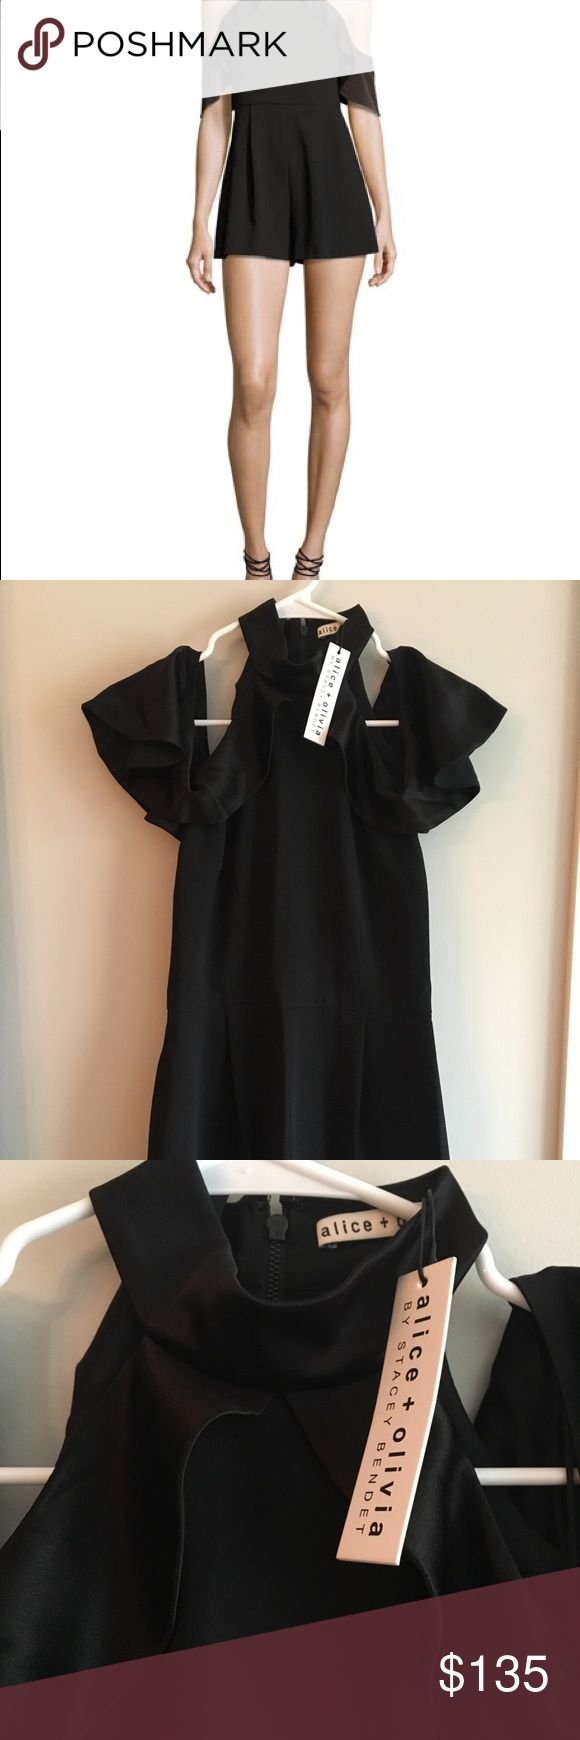 Alice & Olivia Roseline Cold Shoulder Romper S 6 NWT Alice & Olivia Roseline Cold Shoulder Romper Size 6 Color-Black Draped ruffle trim forms flutter half sleeves. High neckline. Cut-in cold shoulders. Nips at high waist. Single-pleat shorts. Relaxed leg openings. Exposed back zip. Polyester; combo, triacetate/polyester. Lining, polyester/spandex. Never worn Perfect for date night, weddings, holiday parties Retails for $295 Comes from a Pet Free and Smoke Free Home Alice + Olivia Dresses